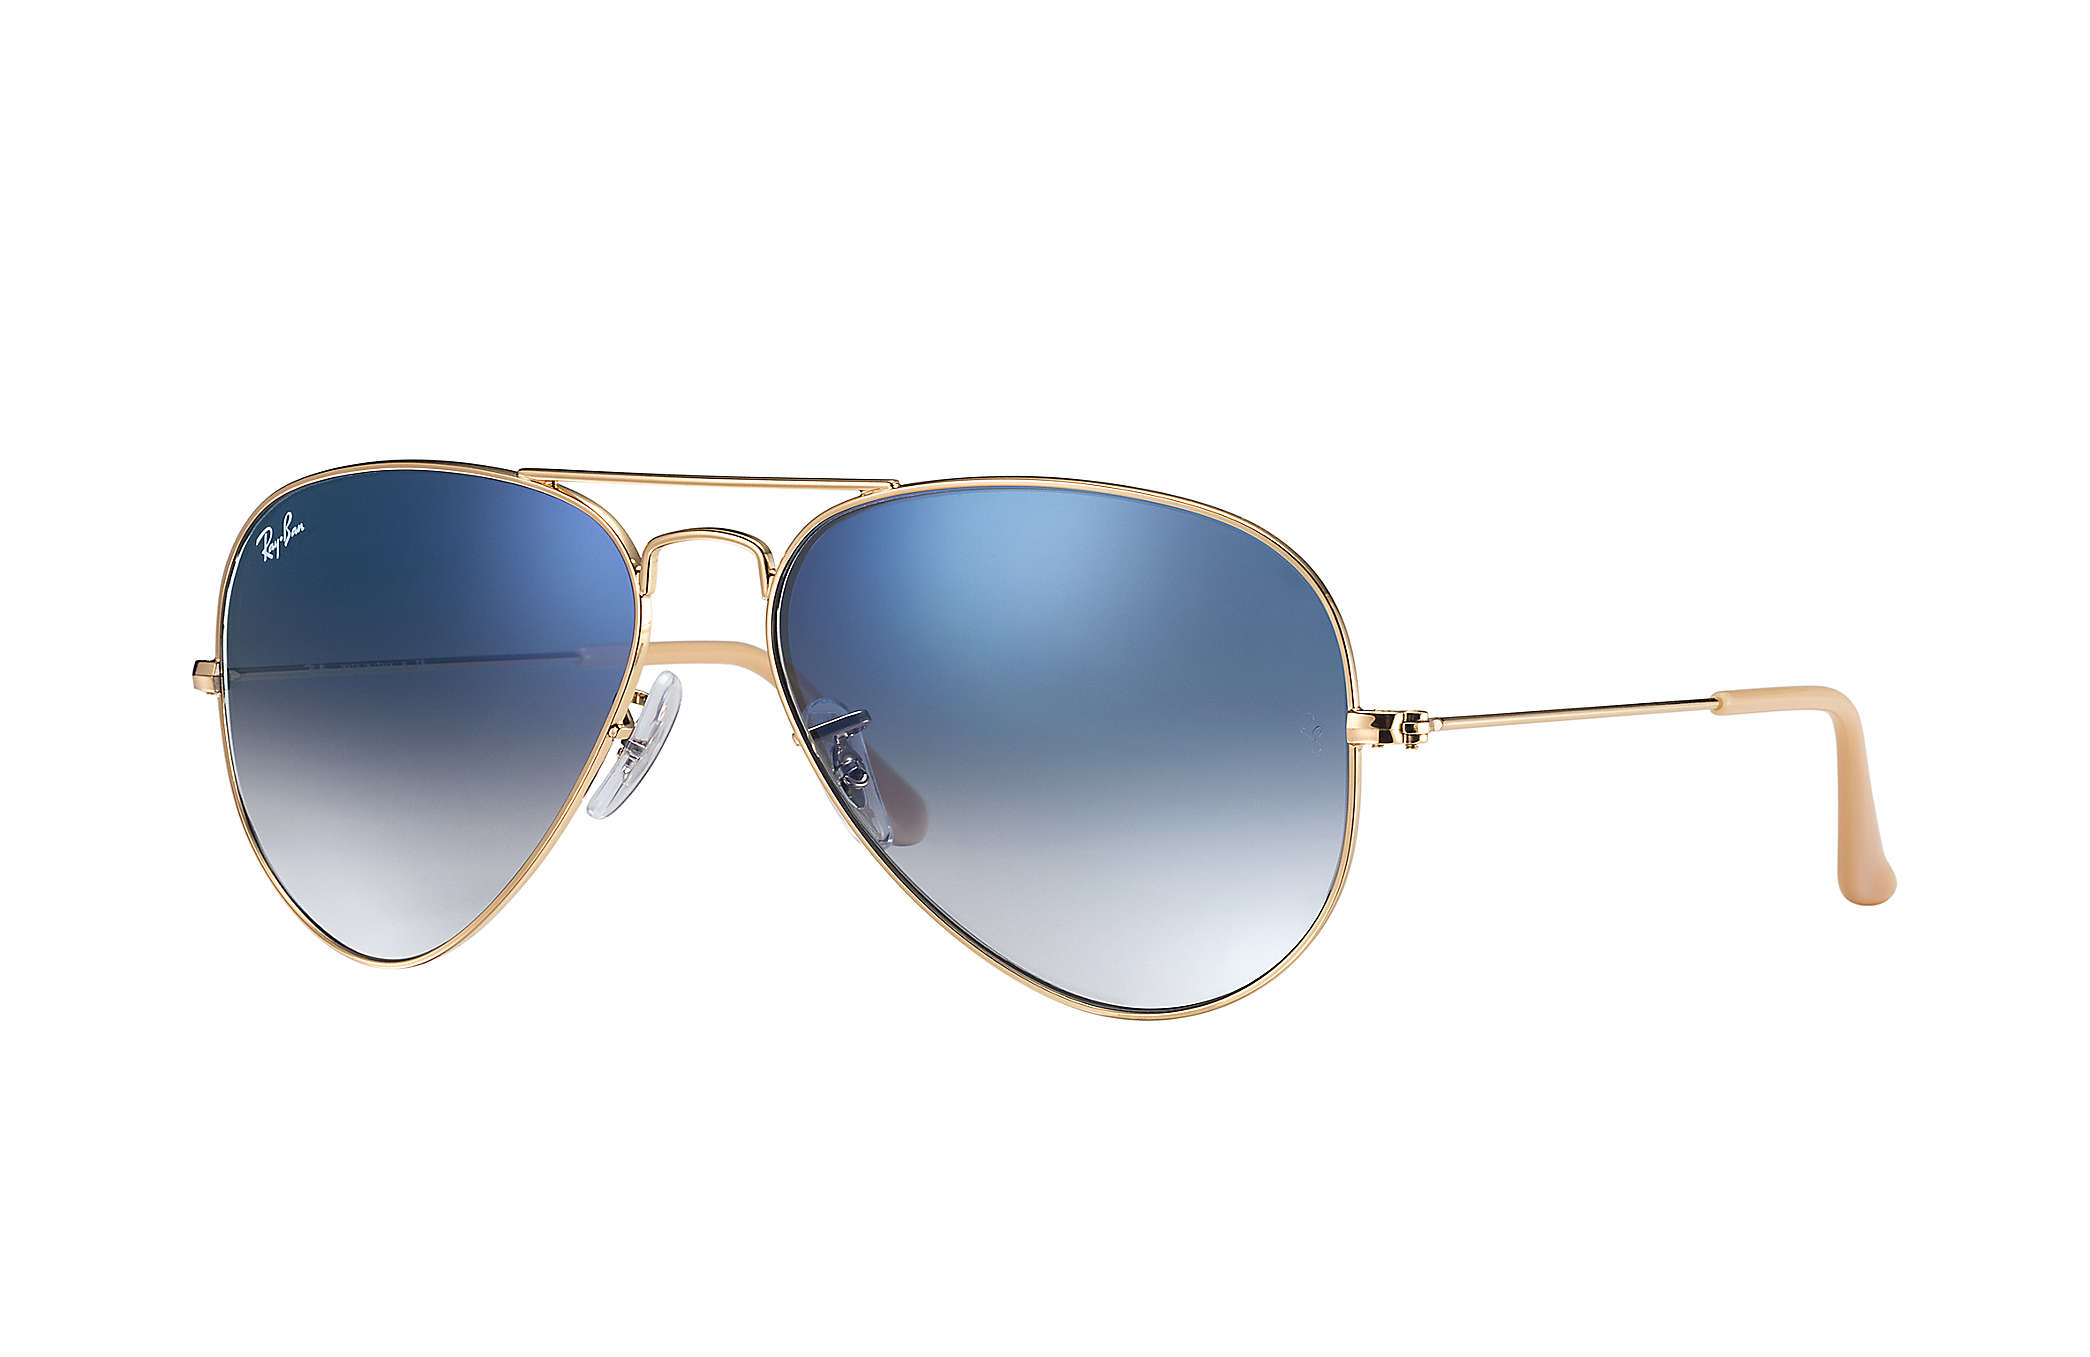 22f8cb75d41db Details about New Ray Ban RB3025-001 3F-62 Gold   Blue Gradient 62mm  Sunglasses